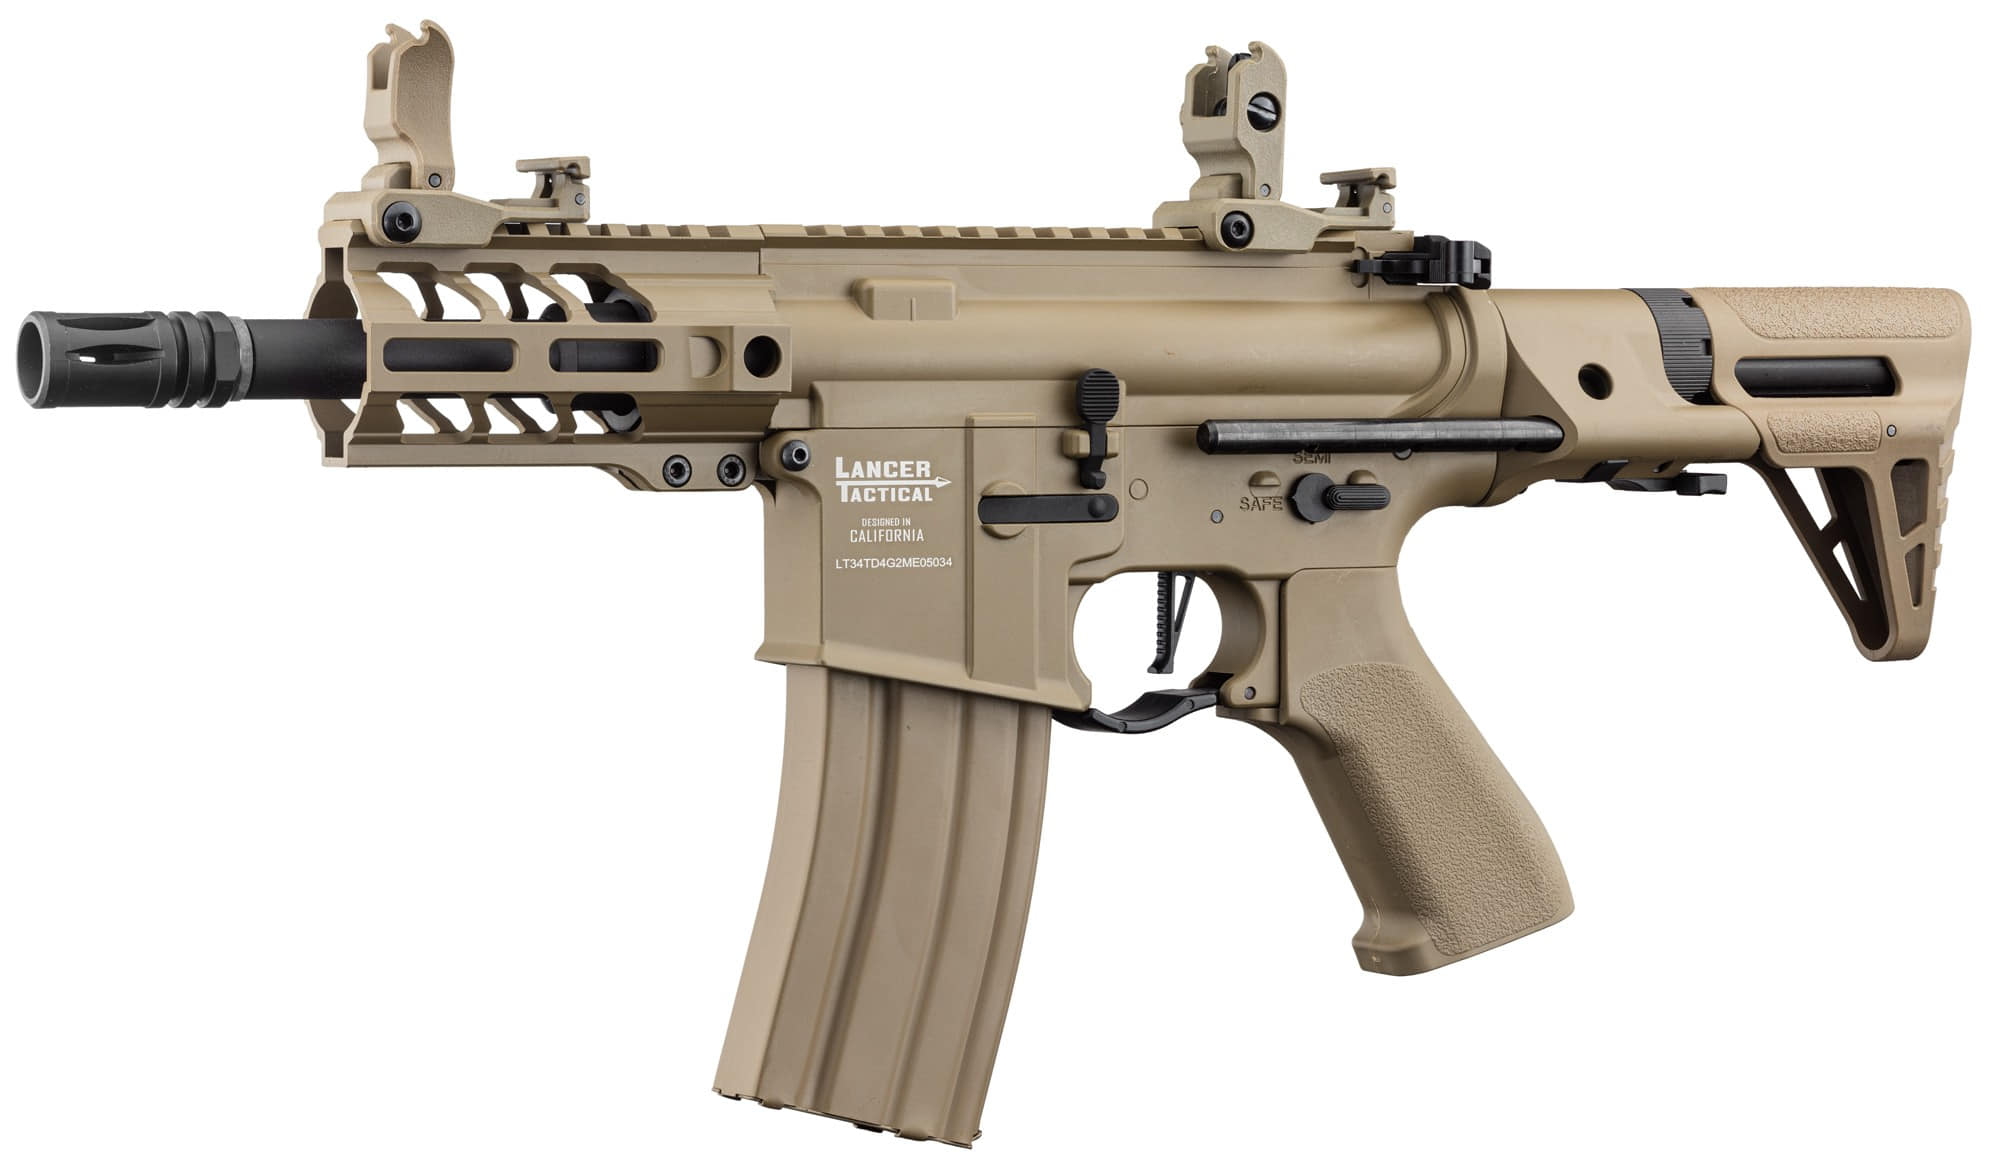 LK9077-4 Réplique AEG LT-34 Proline GEN2 Enforcer Battle Hawk PDW 4' tan - CLK9000